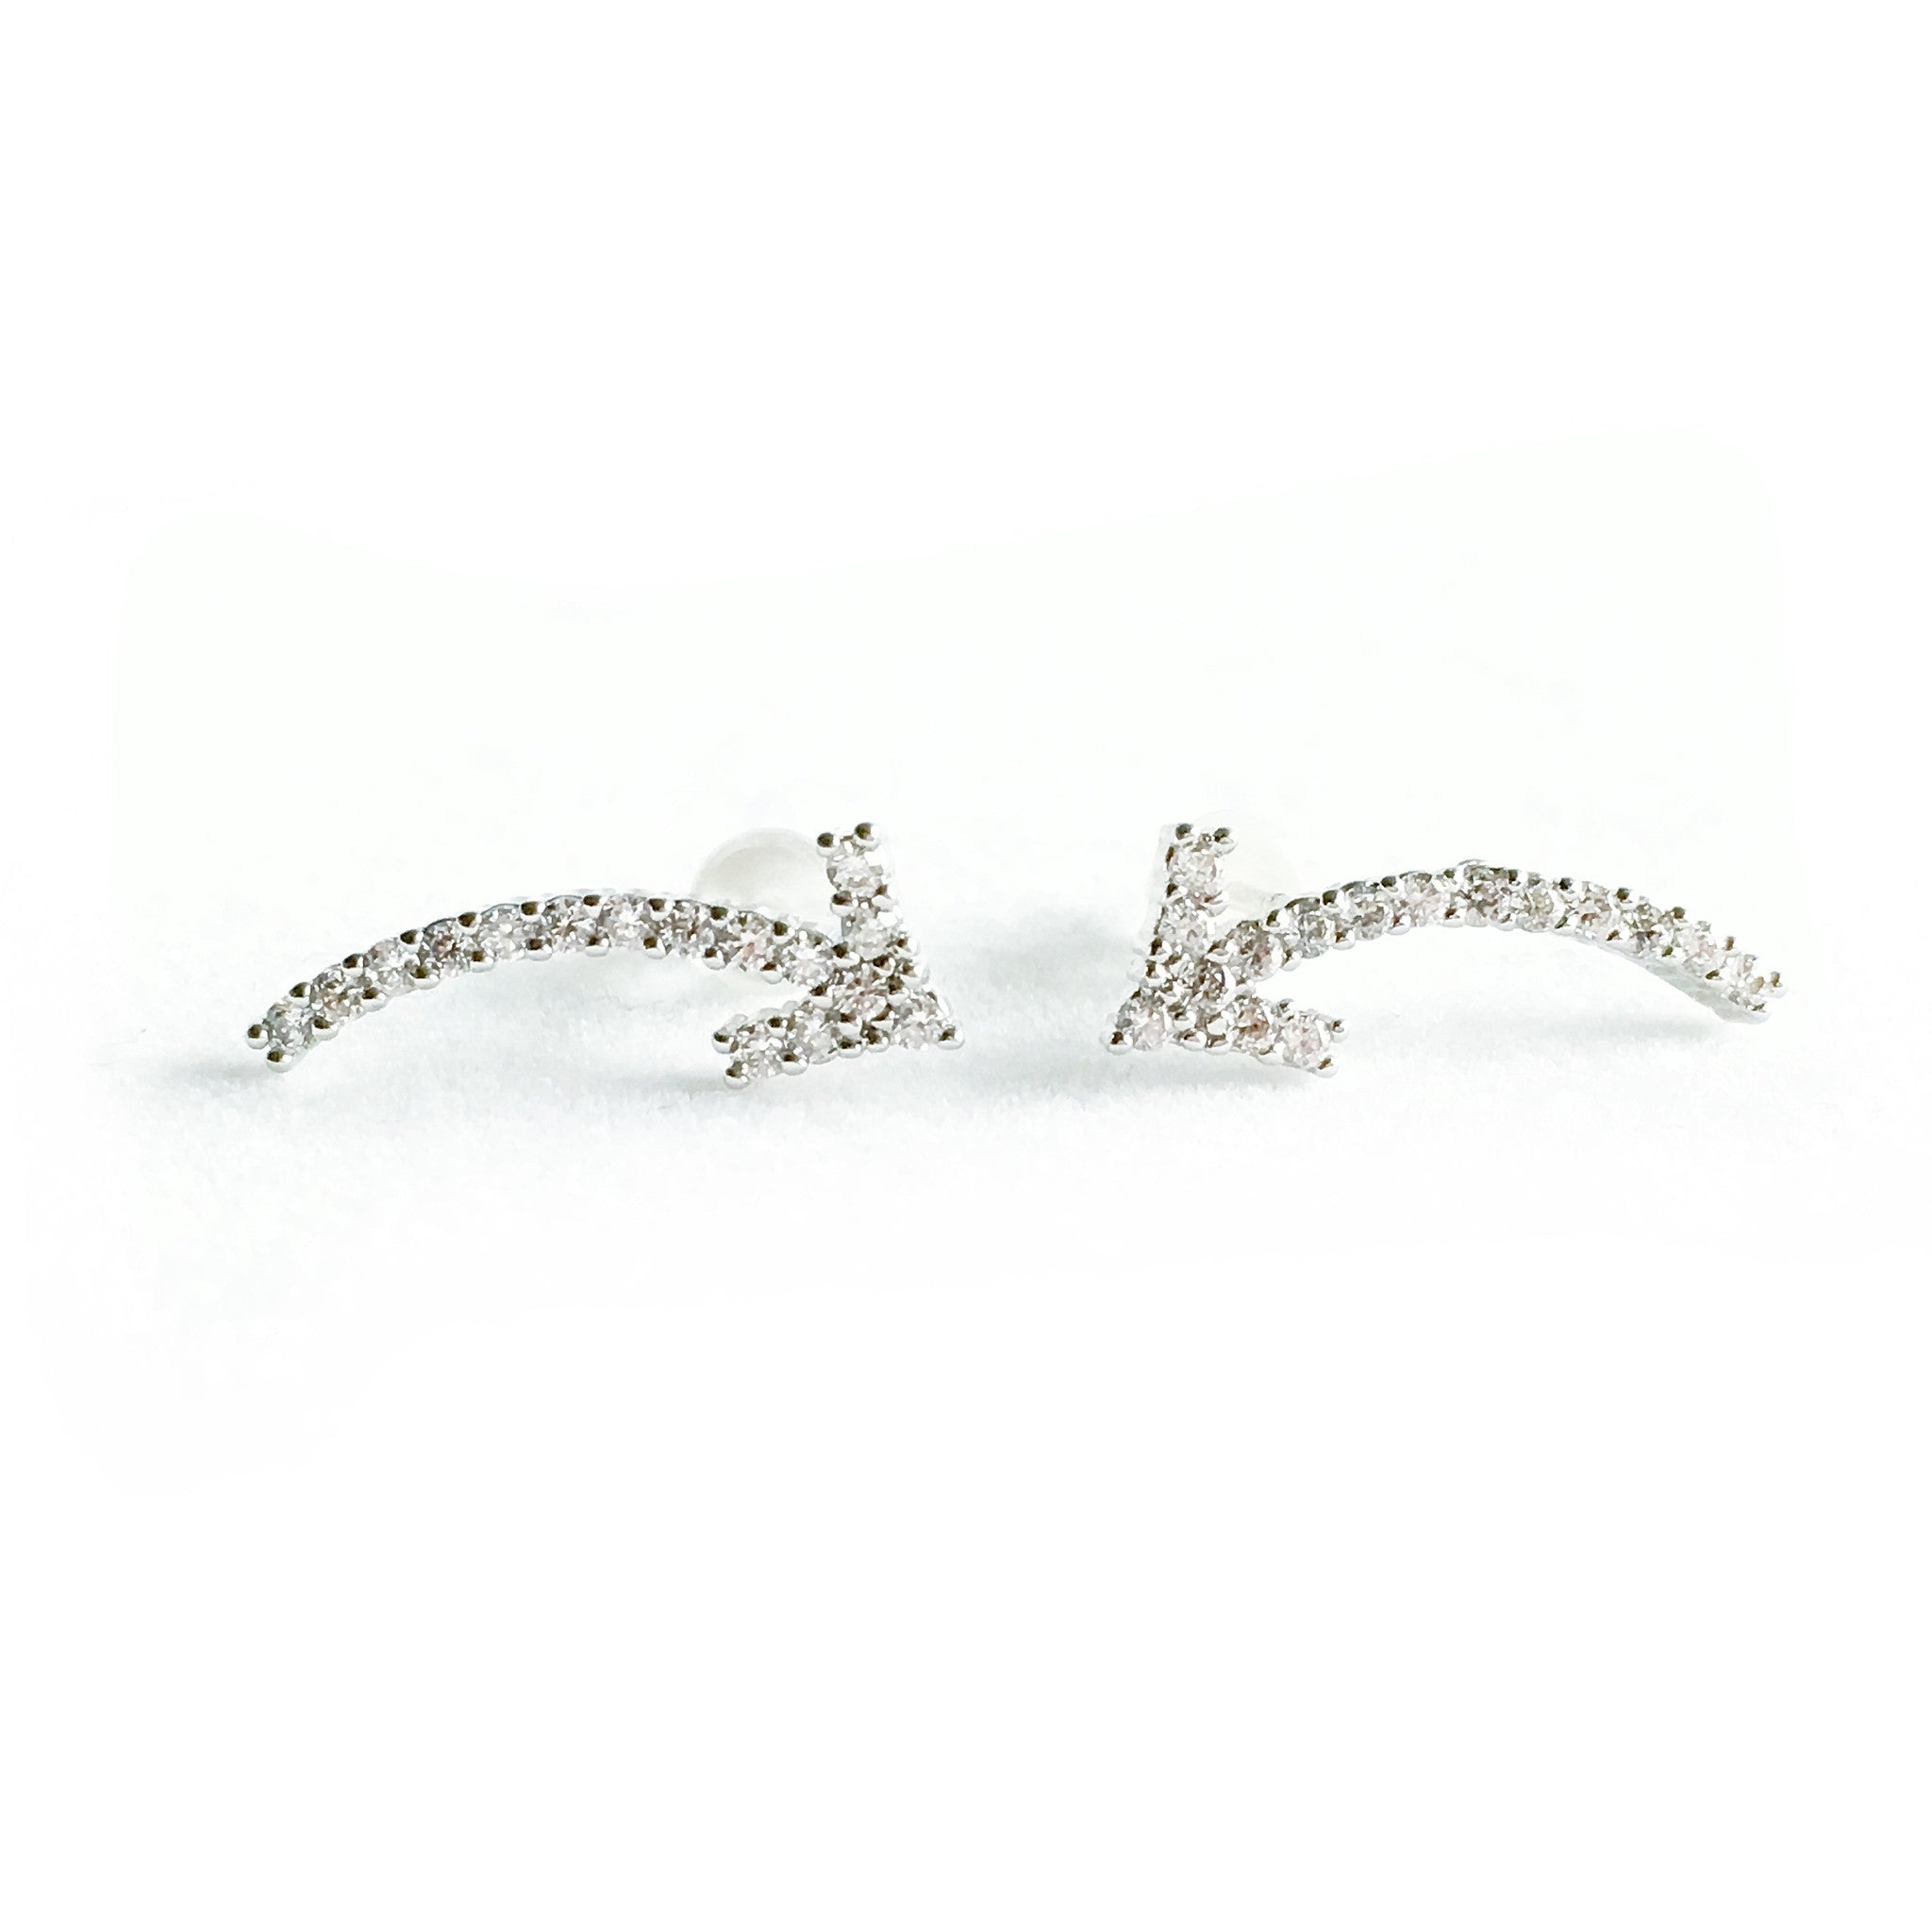 Willow Silver Earrings - Micha Store